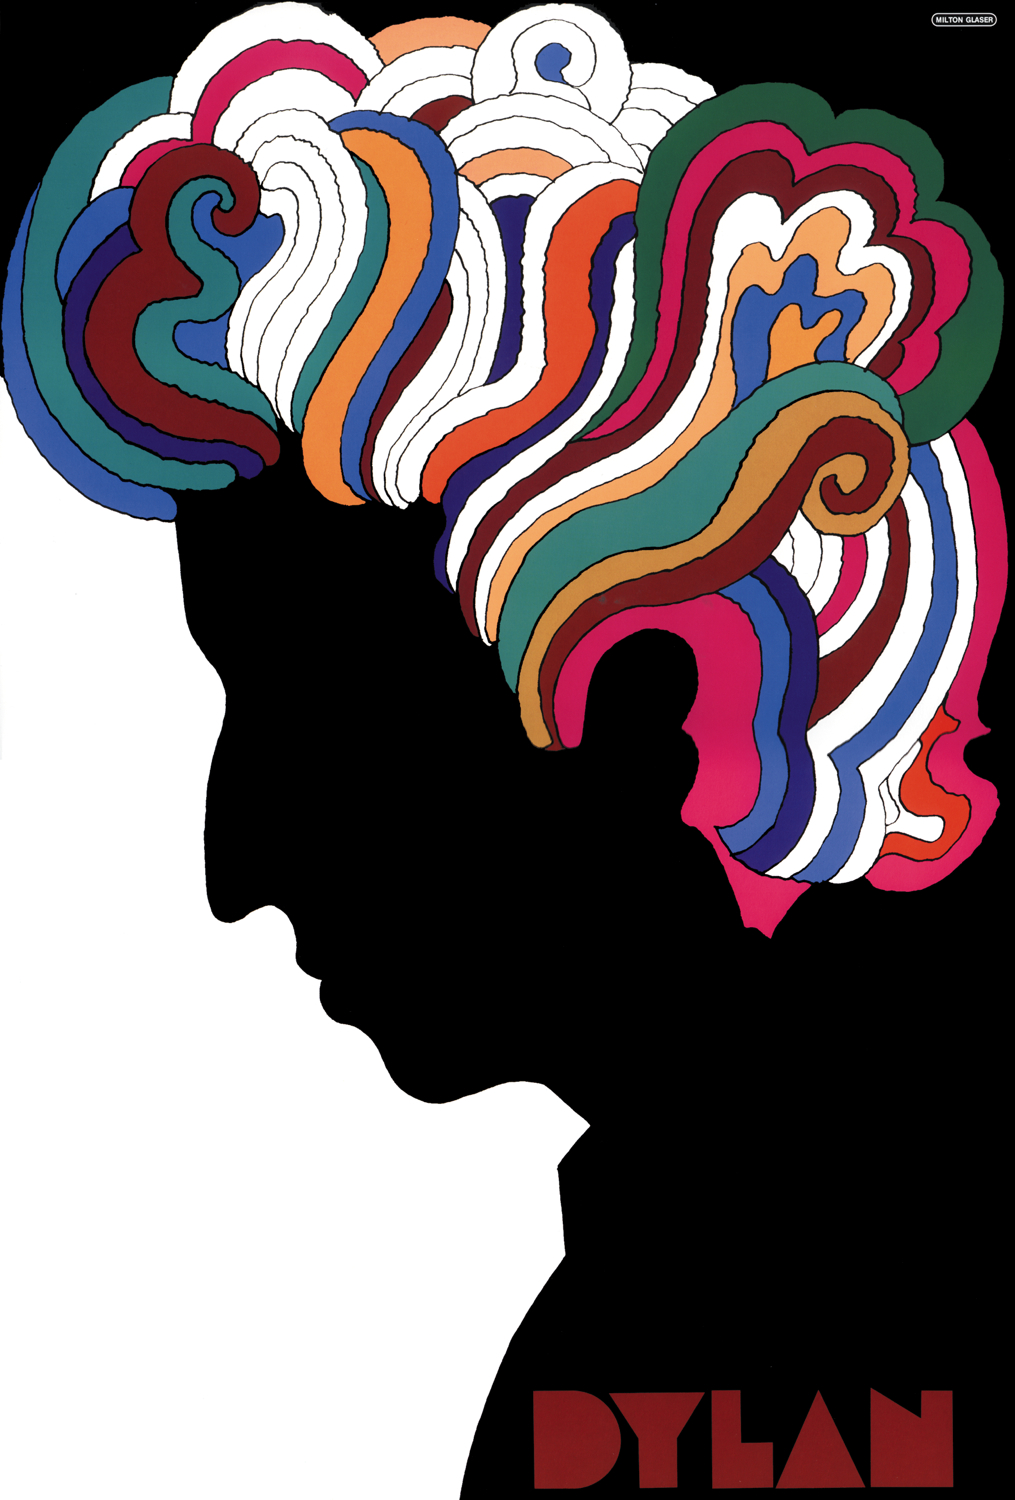 milton-glaser-to-inform-and-delight-pic-3.jpg